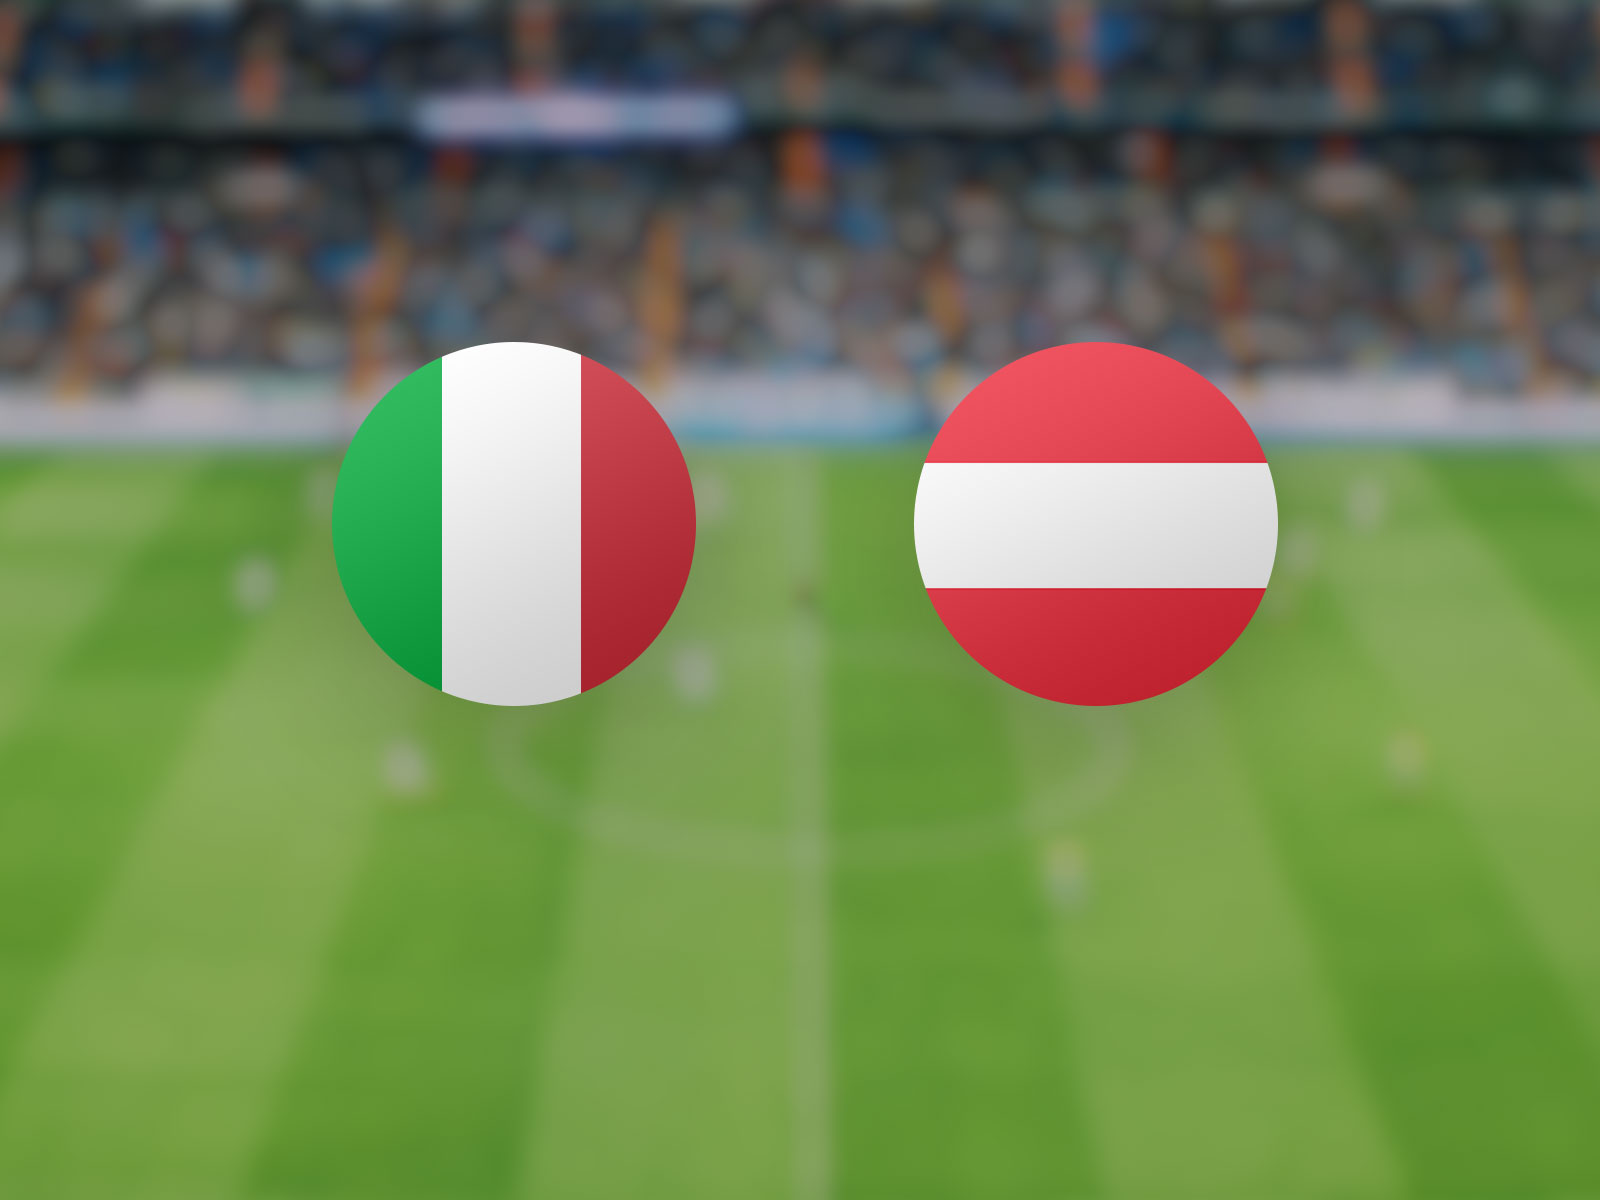 watch Italy vs Austria in Euro 2020 last-16 knockout rounds